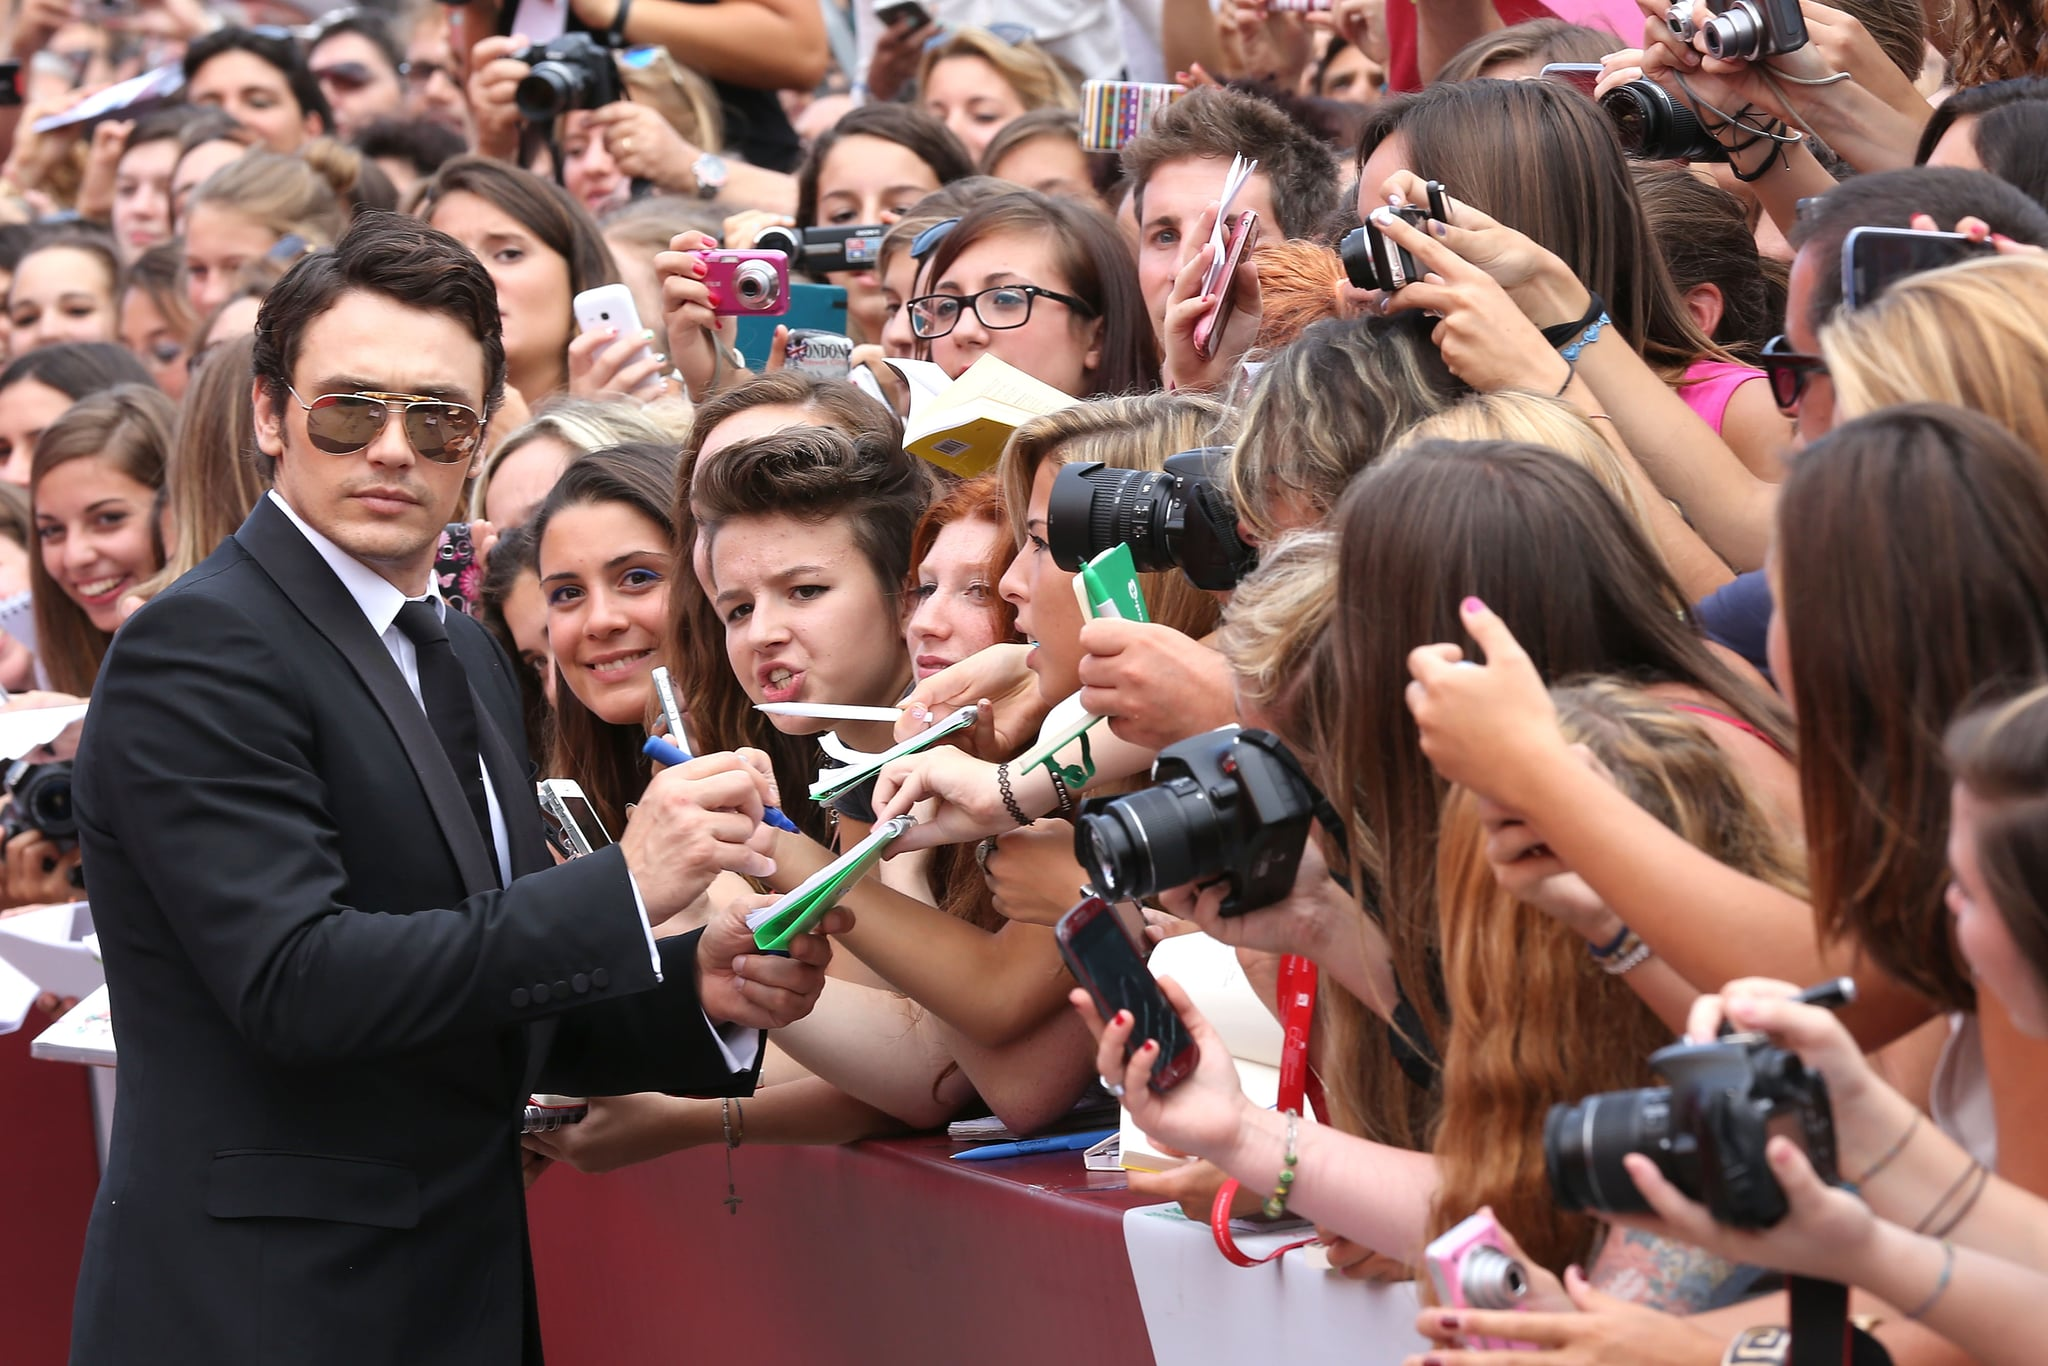 James Franco greeted fans at the Palo Alto premiere.